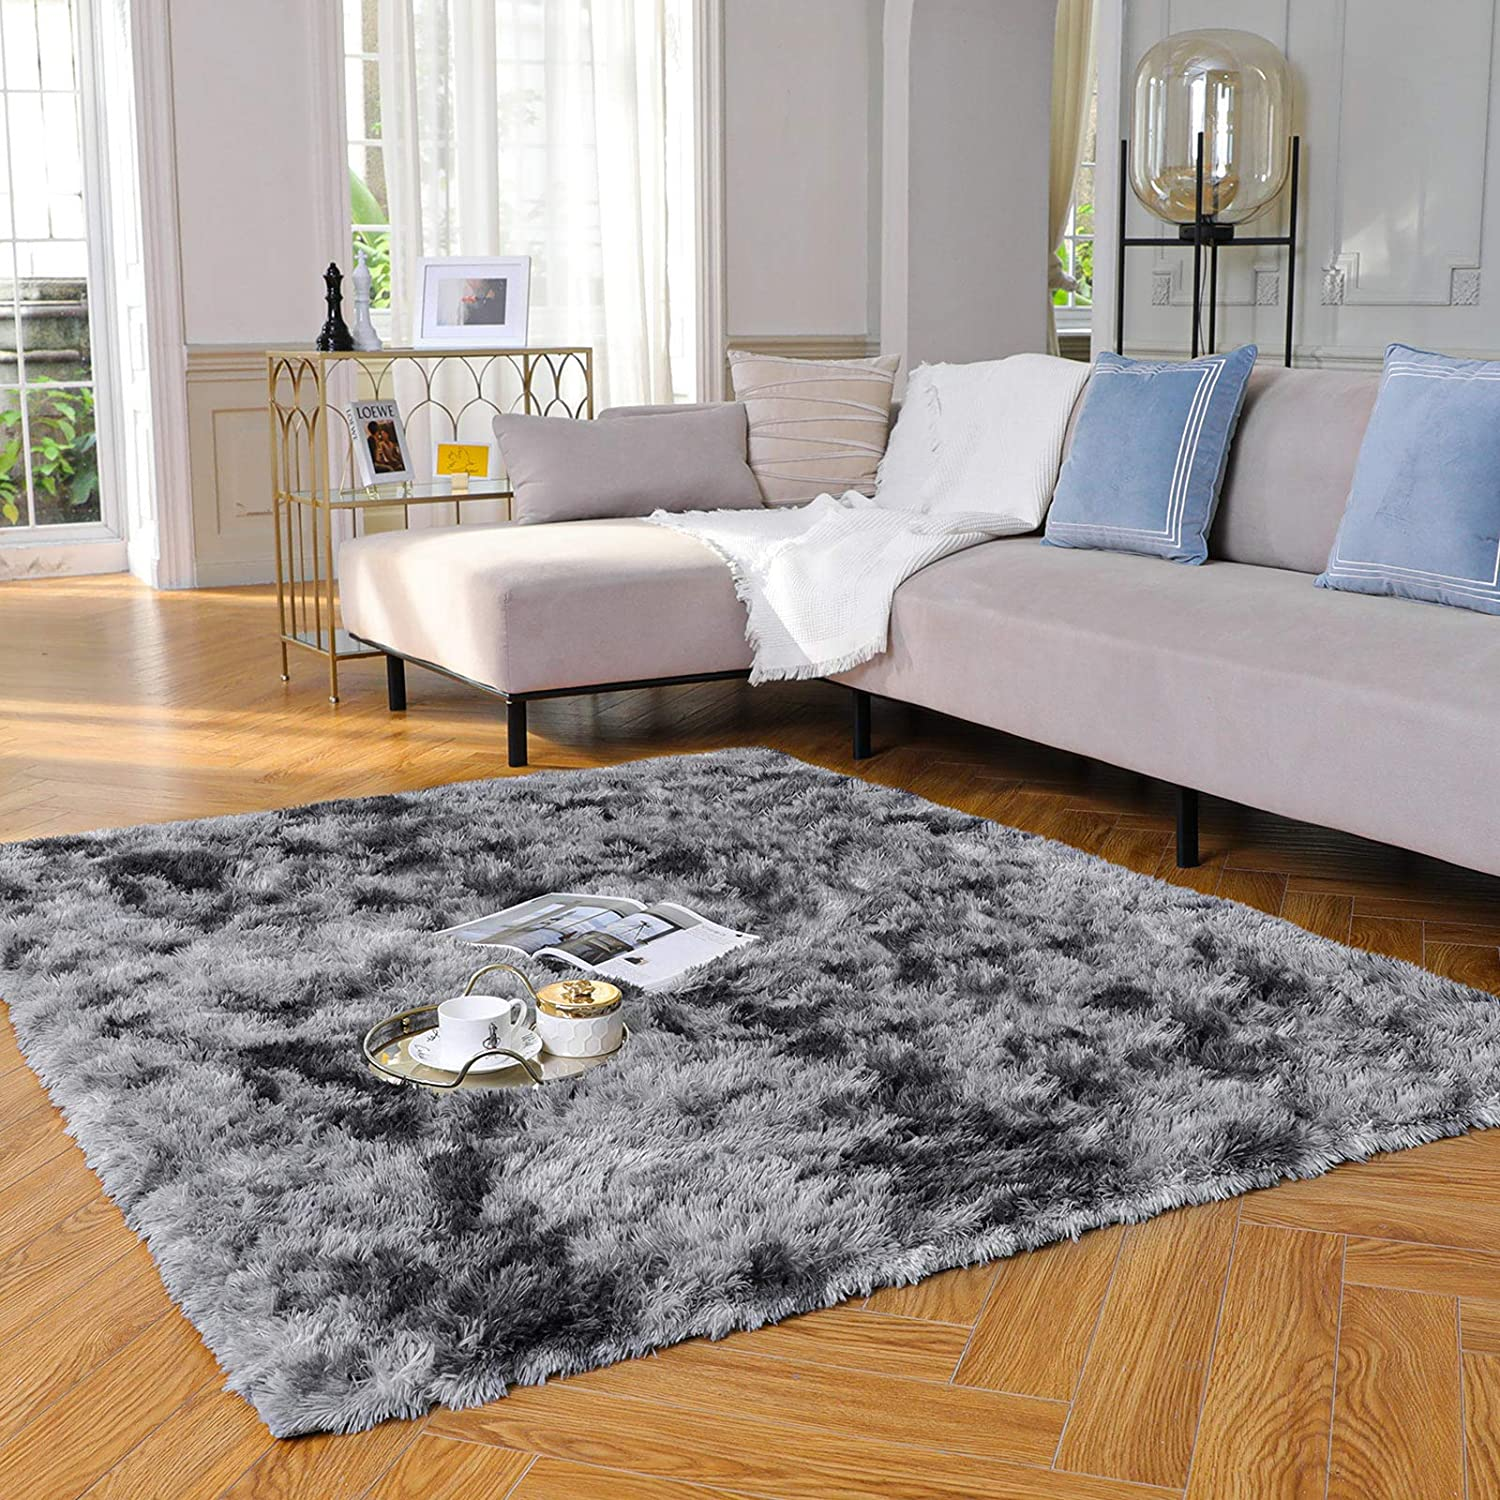 Yome Machine Washable Area Rug, Fuzzy Soft Carpet with Durable Edges, Home Decor Floor Rug for Your Home's Living Room, Bedroom, Kid's Room, Office, Fluffy Rug 4 x 5.3 Feet, Light-Grey/Black.